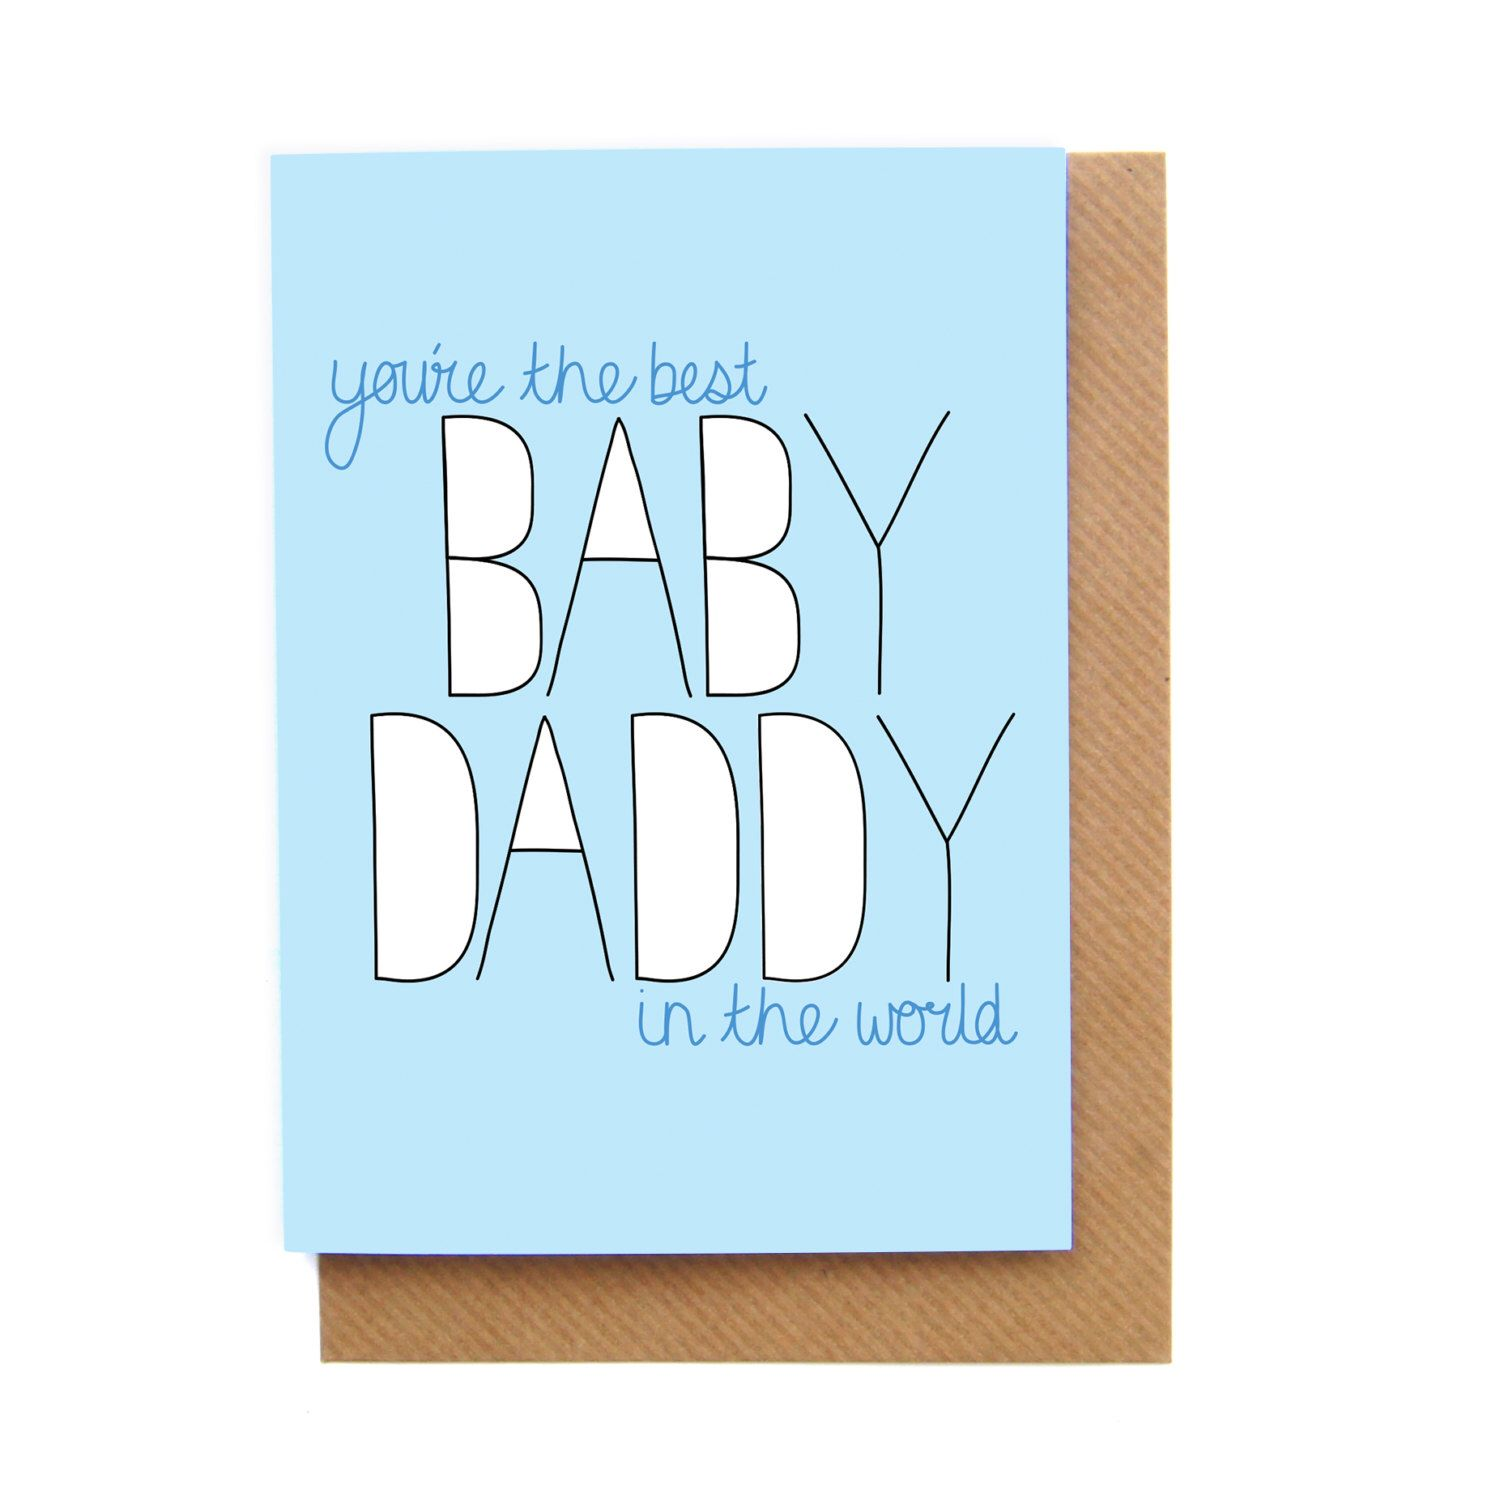 Funny Fathers Day Card Baby Daddy Happy Birthday Greetings Youre The